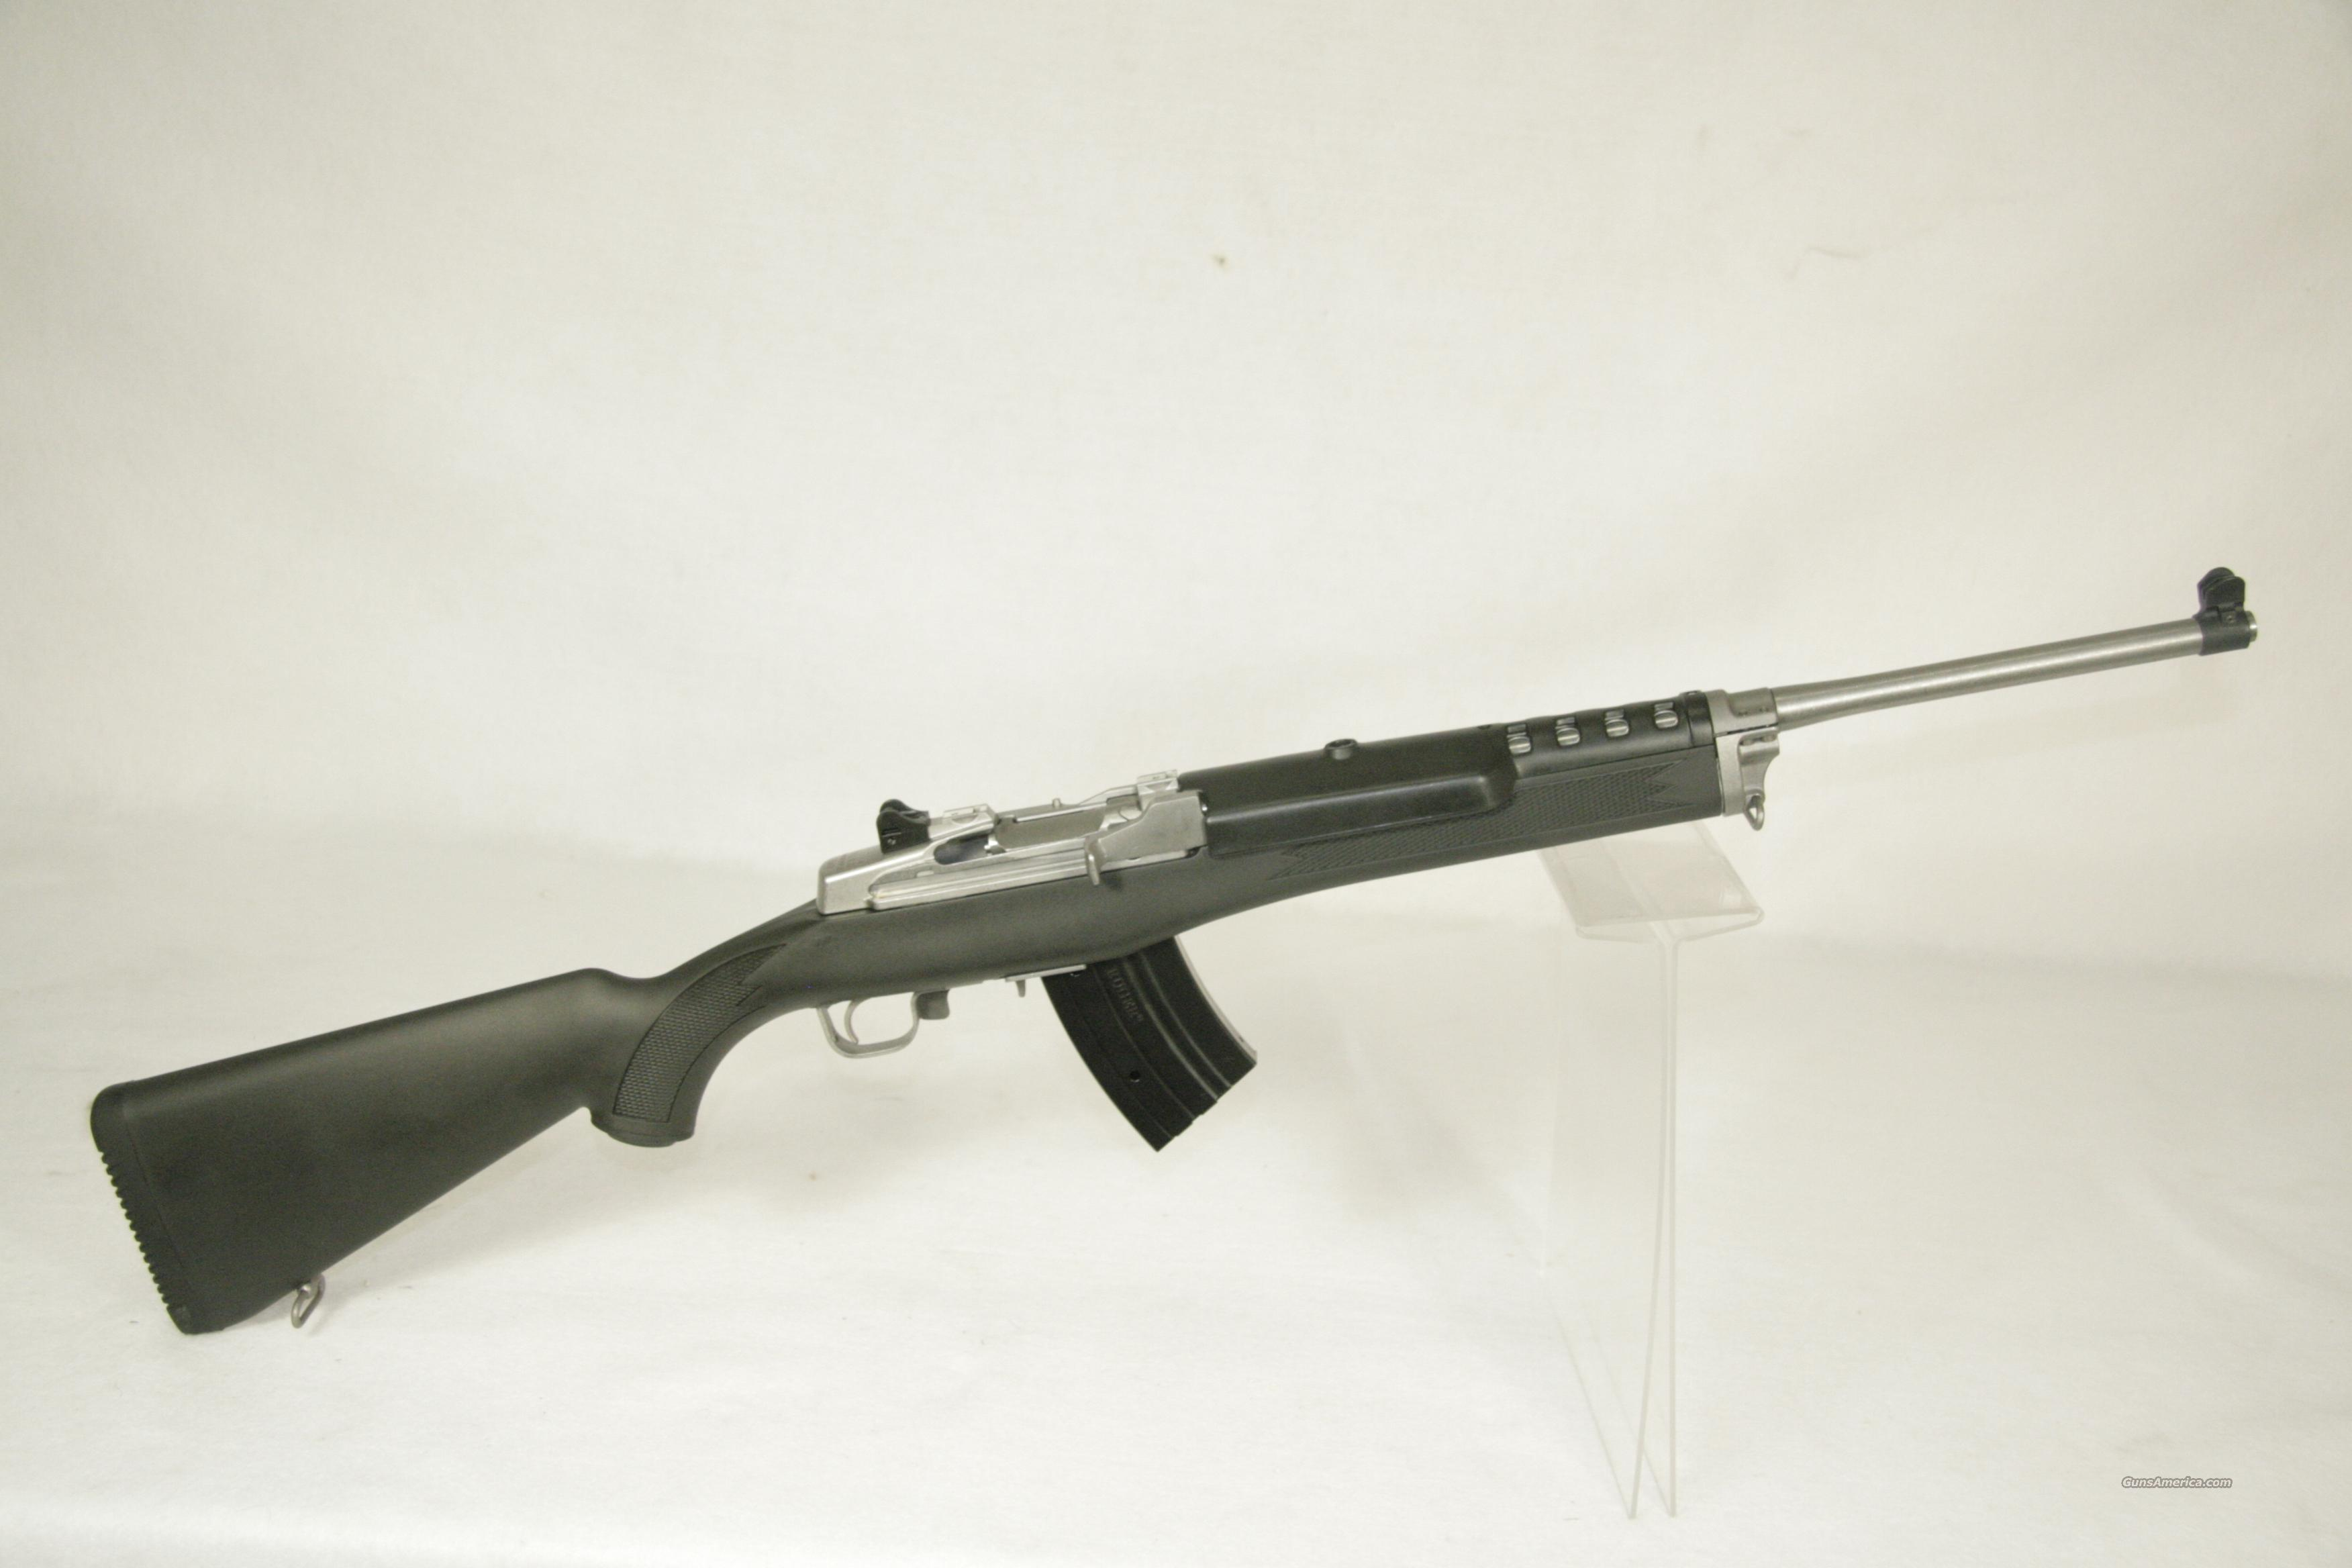 Ruger Mini-30 7.62x39mm W/2Mag/ScopeBase/Rings  Guns > Rifles > Ruger Rifles > Mini-14 Type